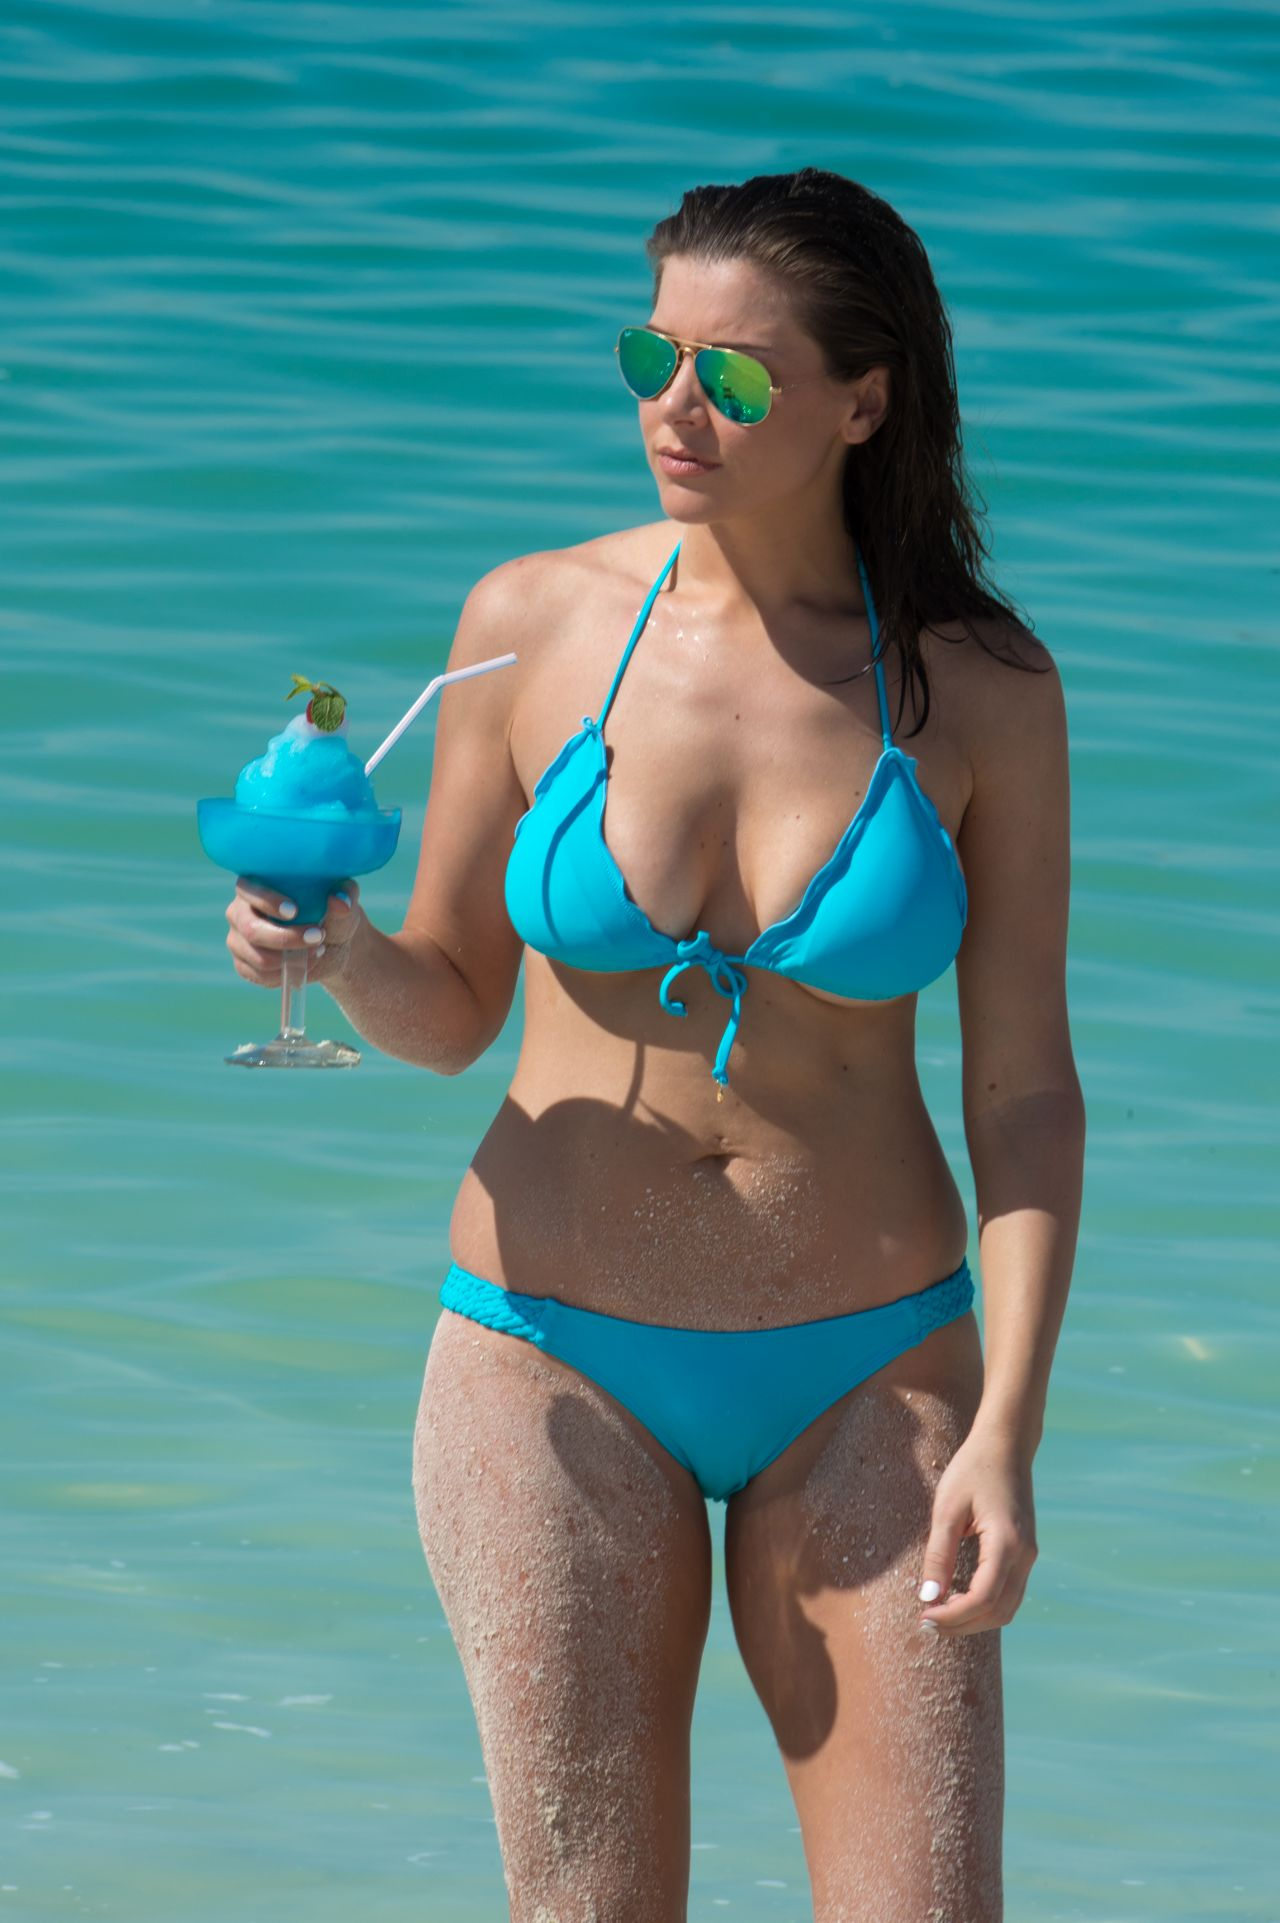 Imogen Thomas Bikini Photos - Miami, March 2015